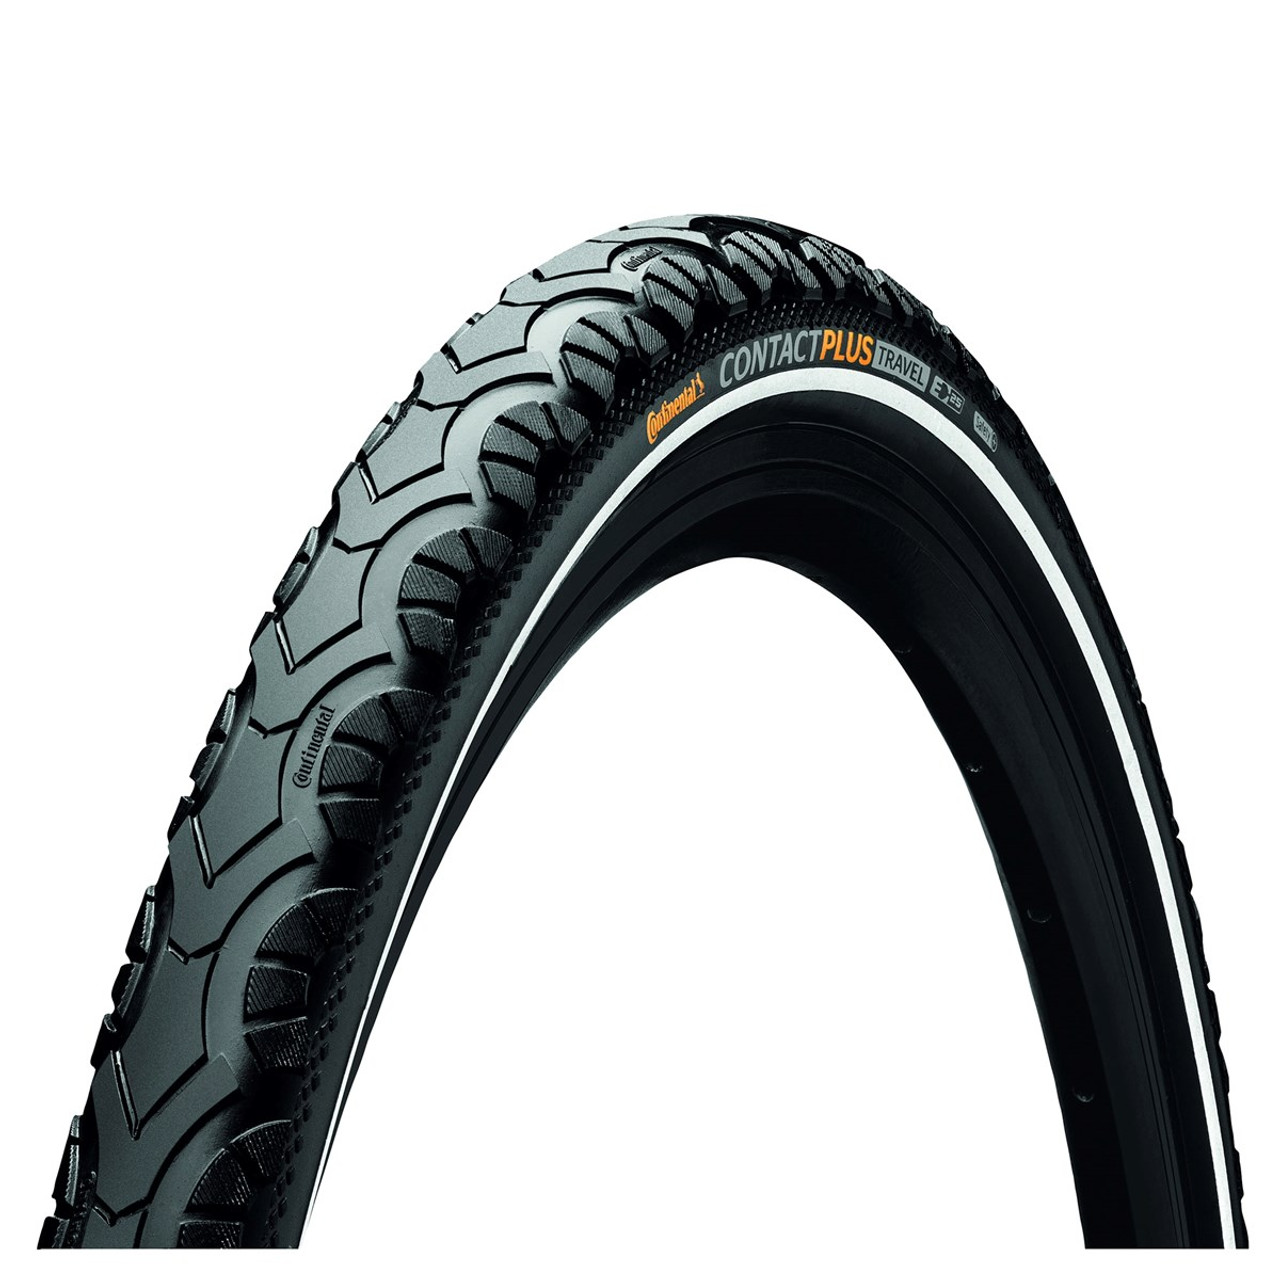 Continental Contact Plus Travel Wired Tyre Black/Reflex